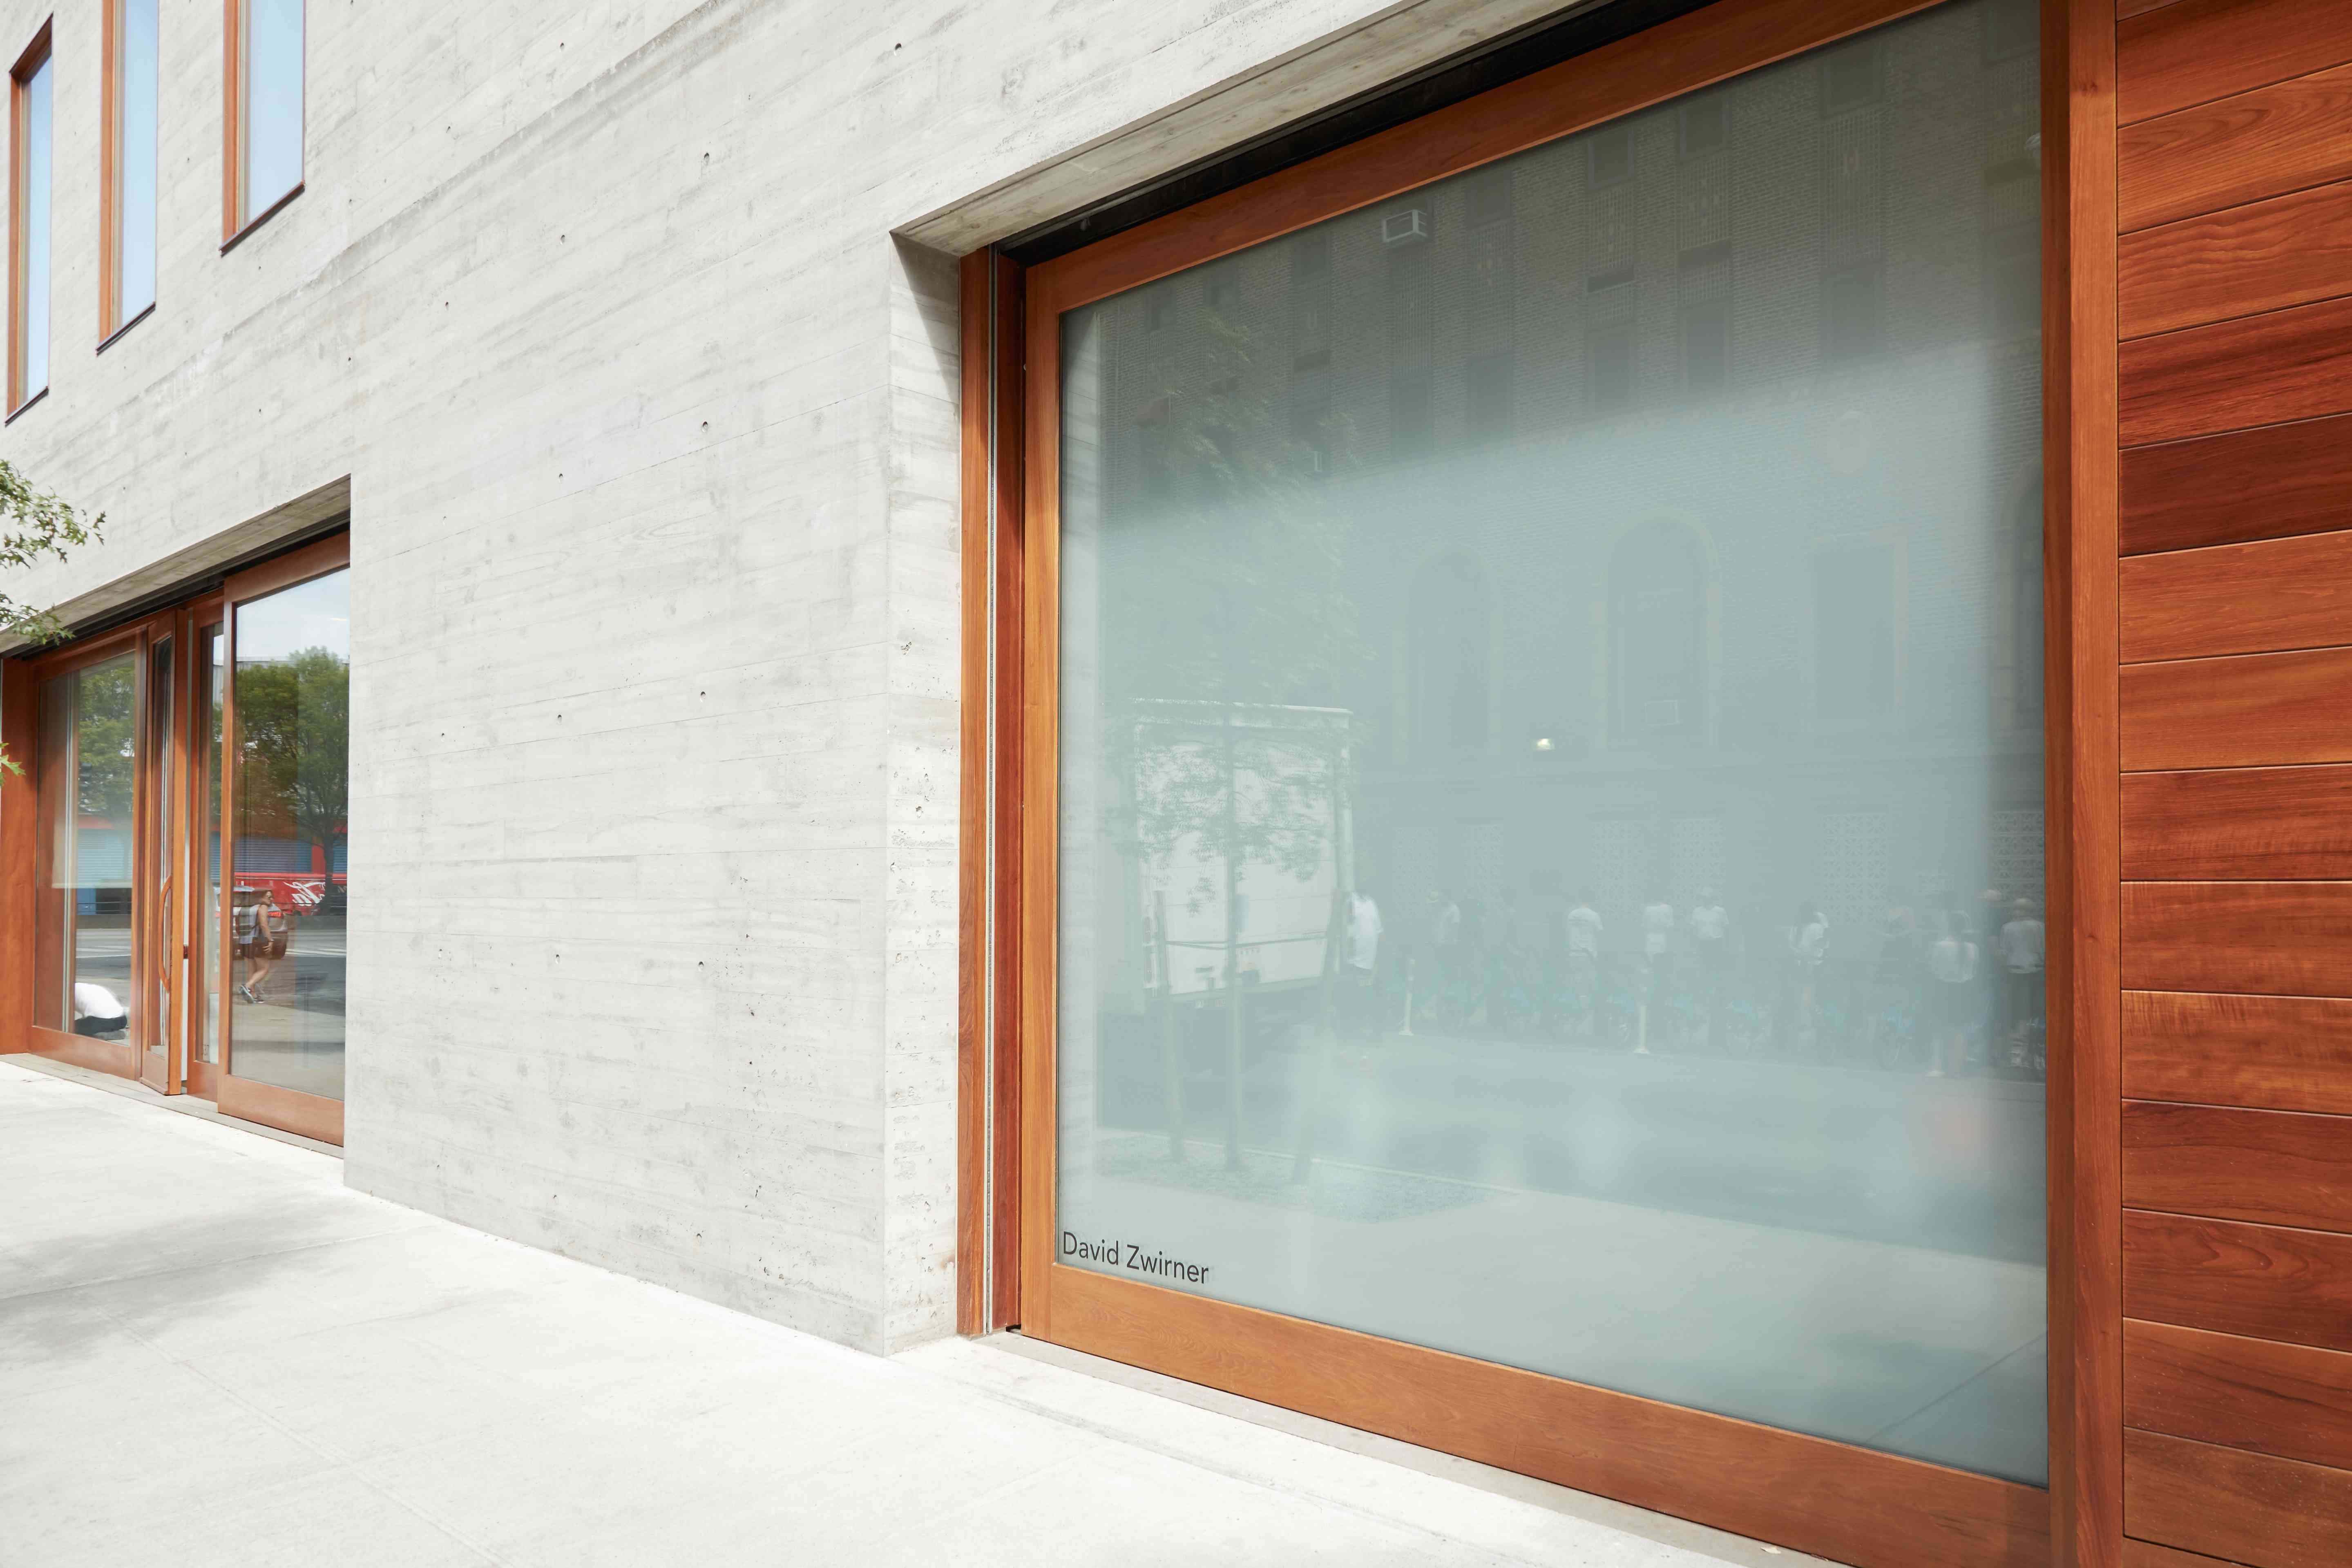 David Zwirner Gallery exterior view in Chelsea in a sunny day in New York